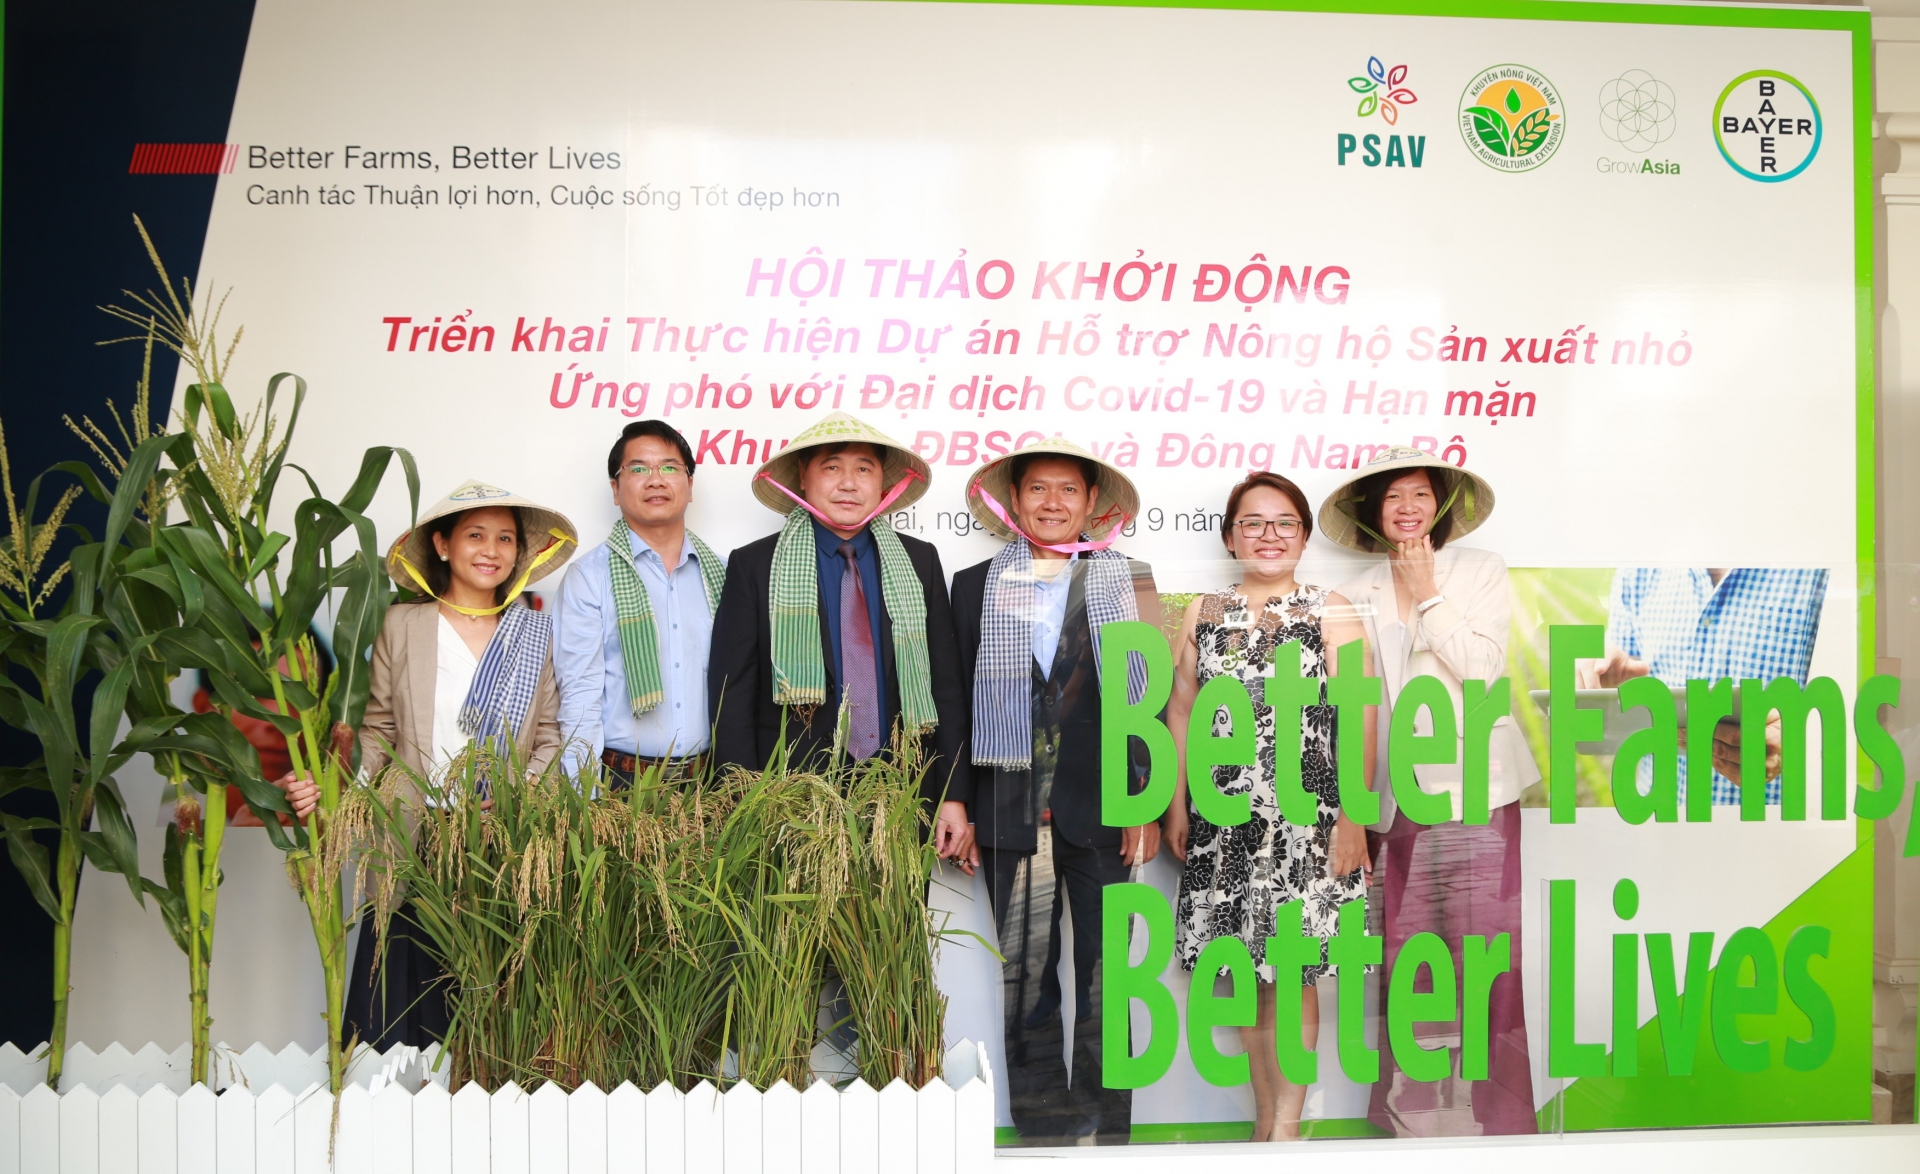 Mekong Delta smallholder farmers to receive COVID-19, drought, and saline intrusion support